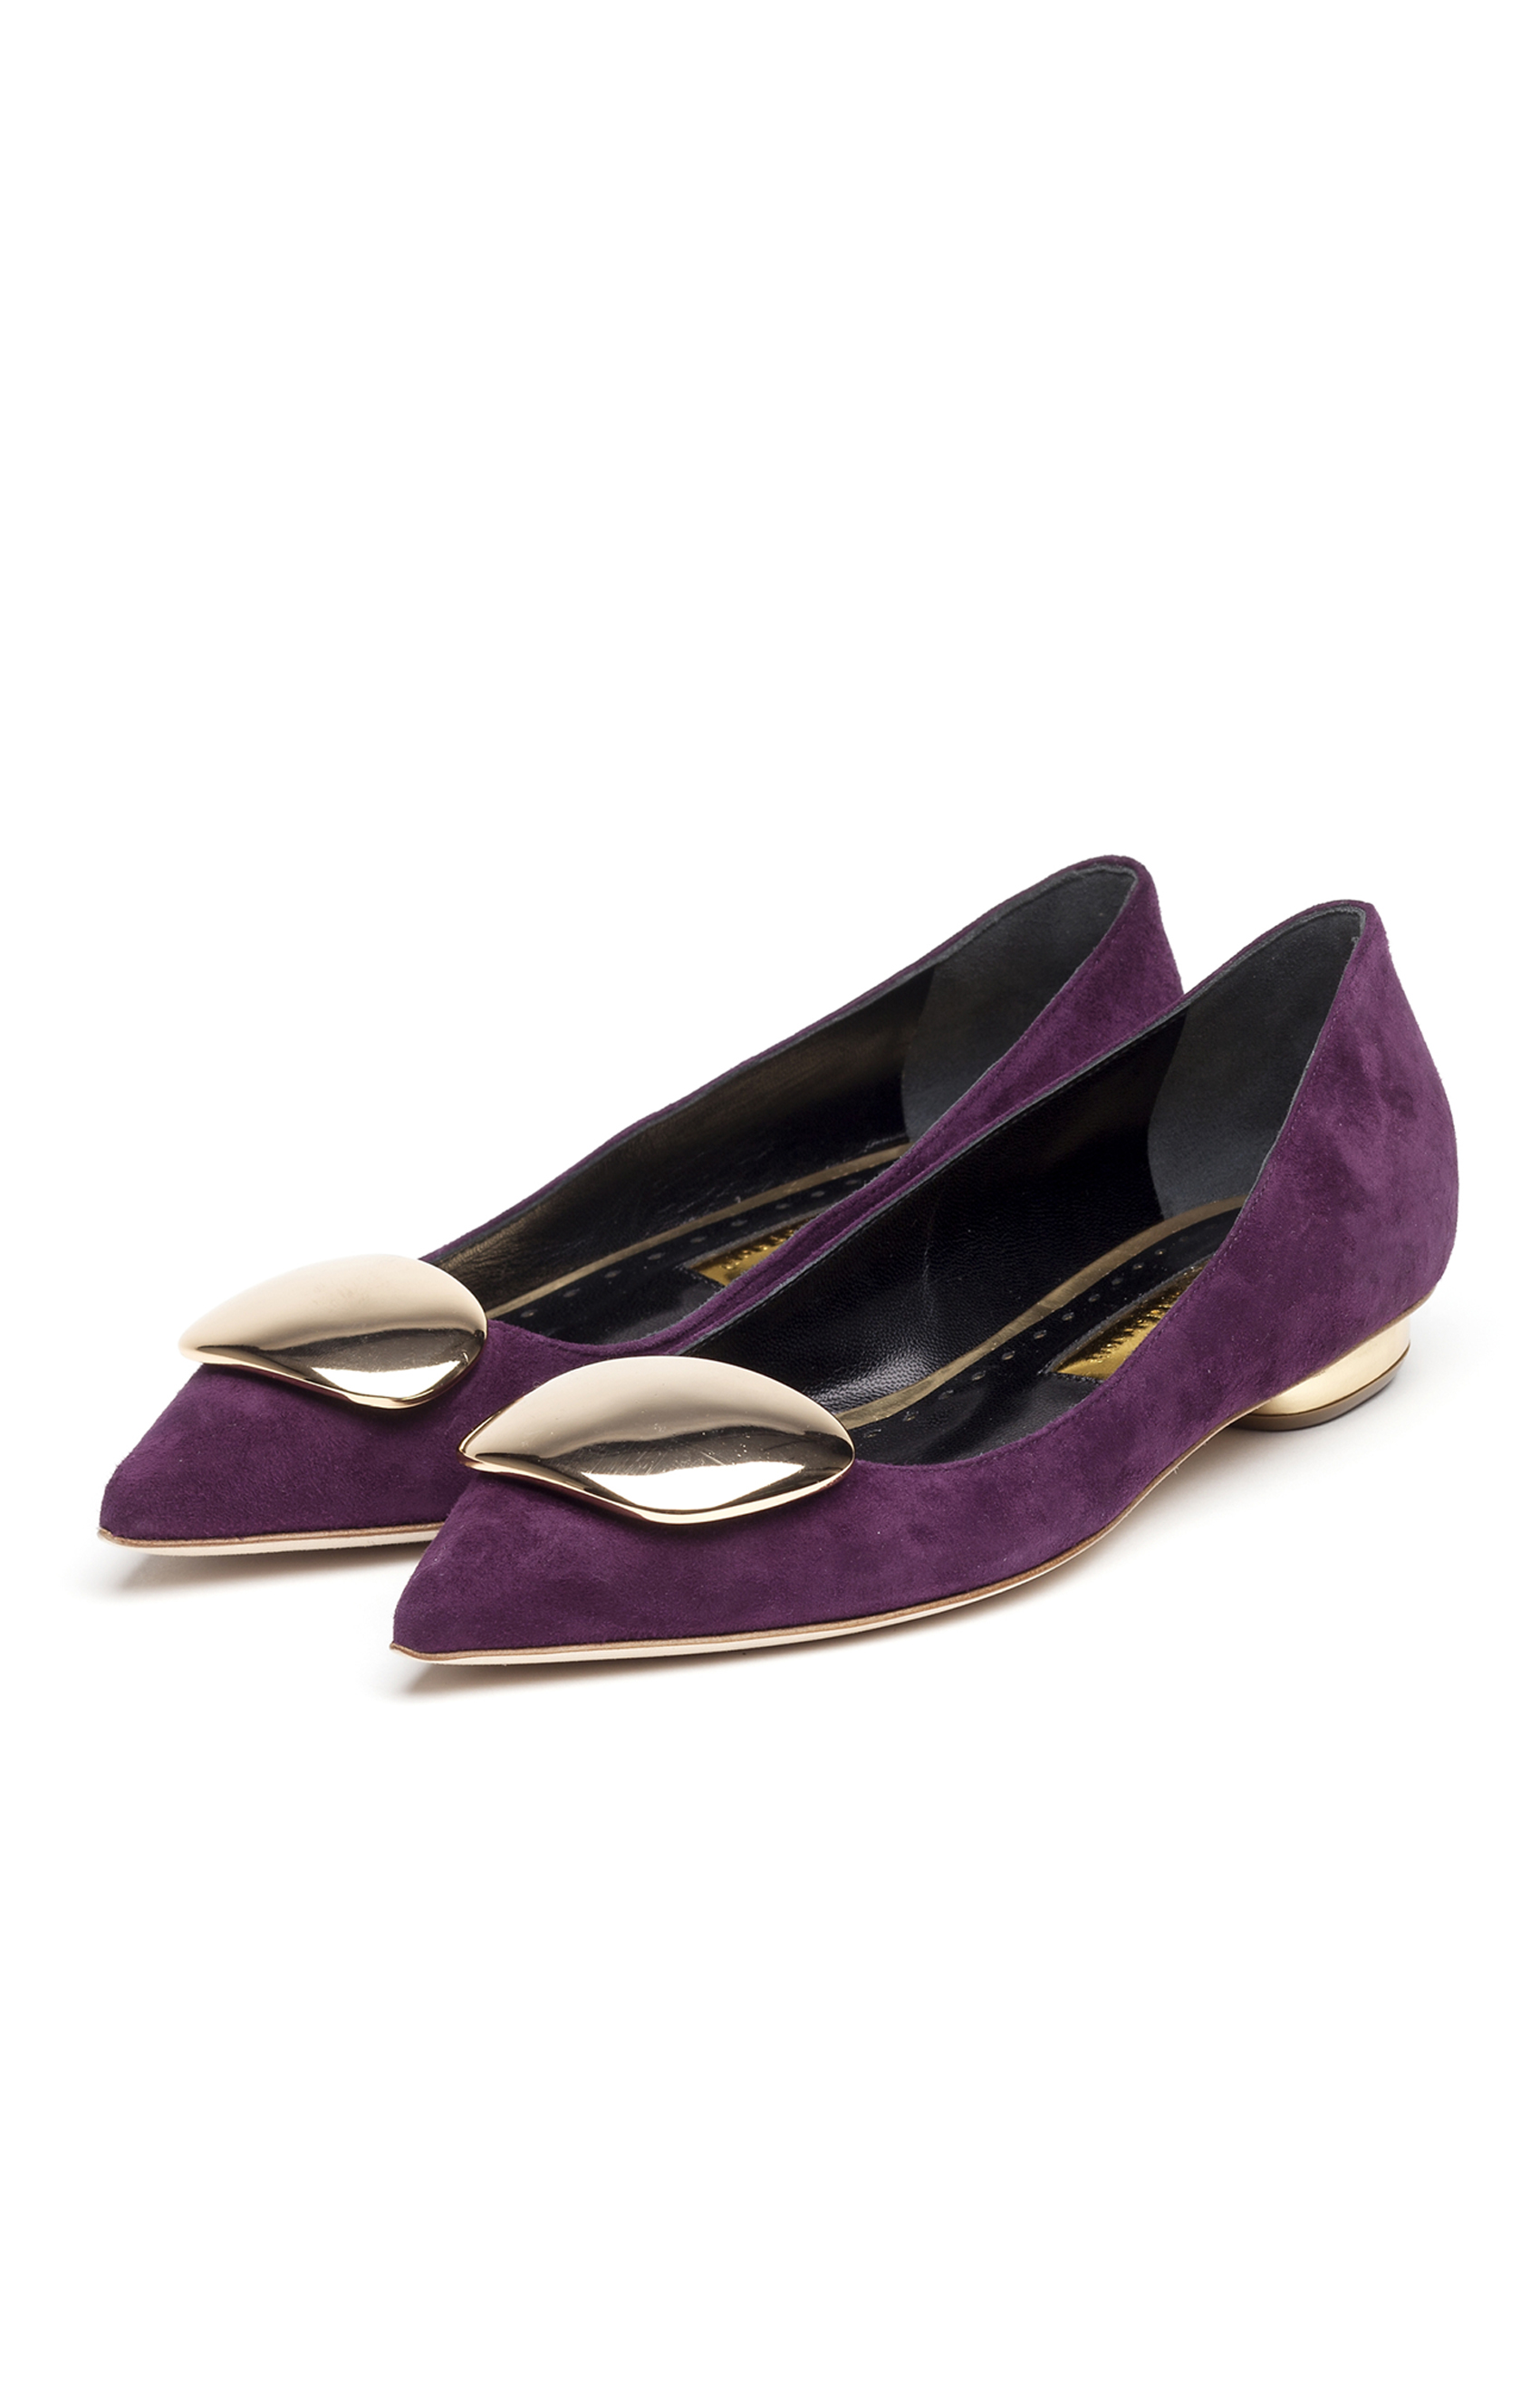 Rupert Sanderson<br>Twinkle Grape suede - gold crome pebble and heel PAIR